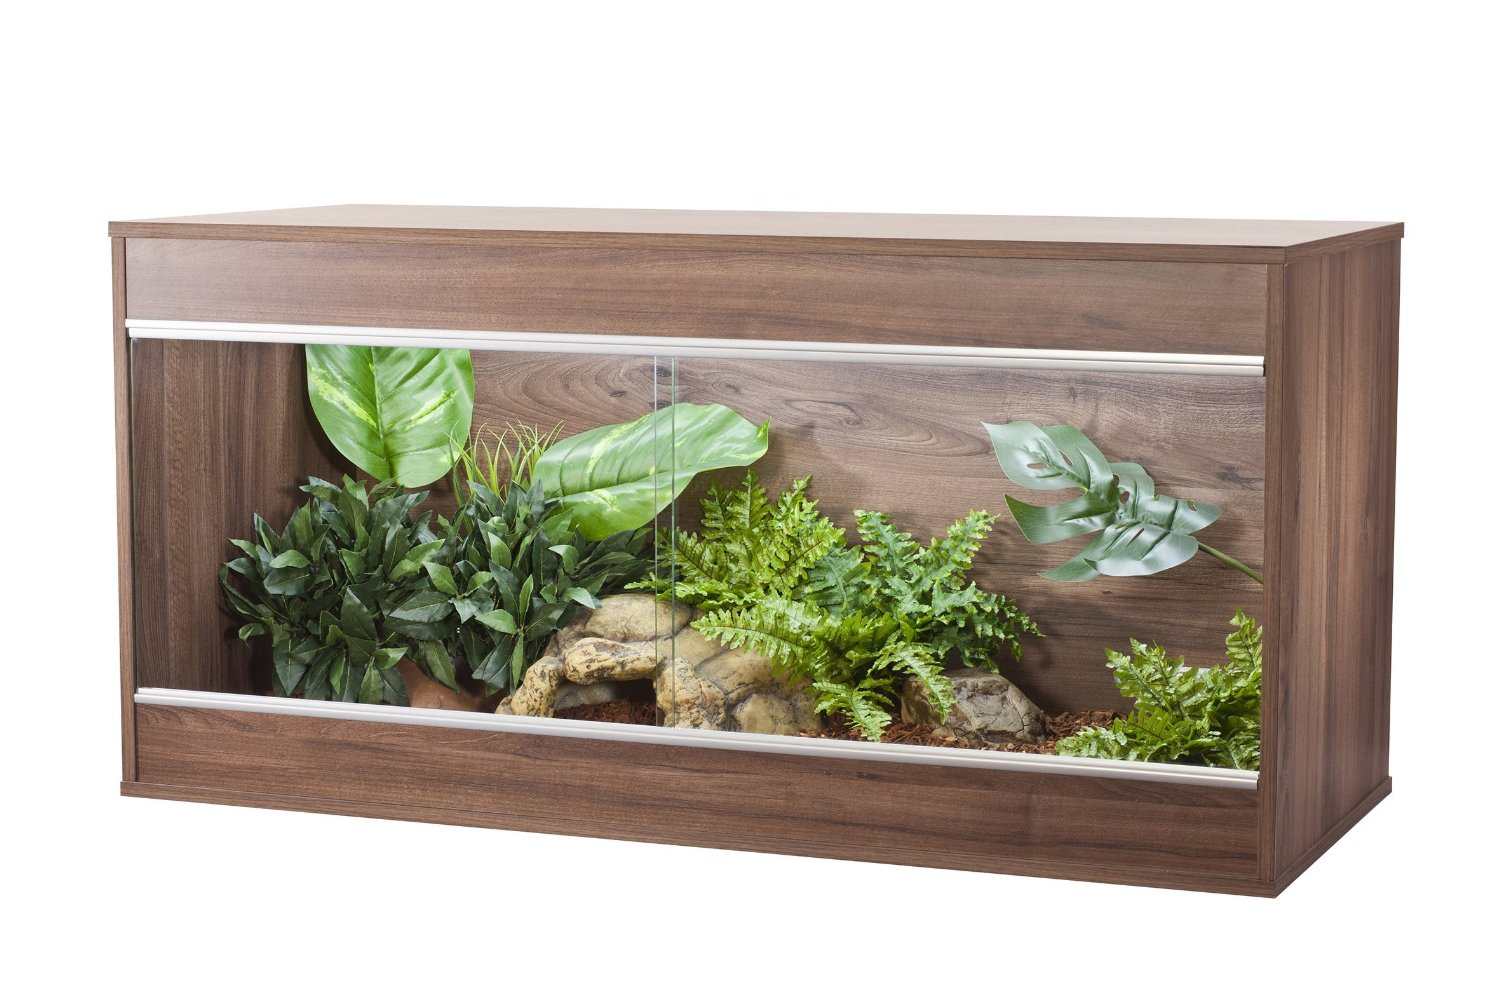 Vivexotic Repti-Home Vivarium Maxi Large - Walnut